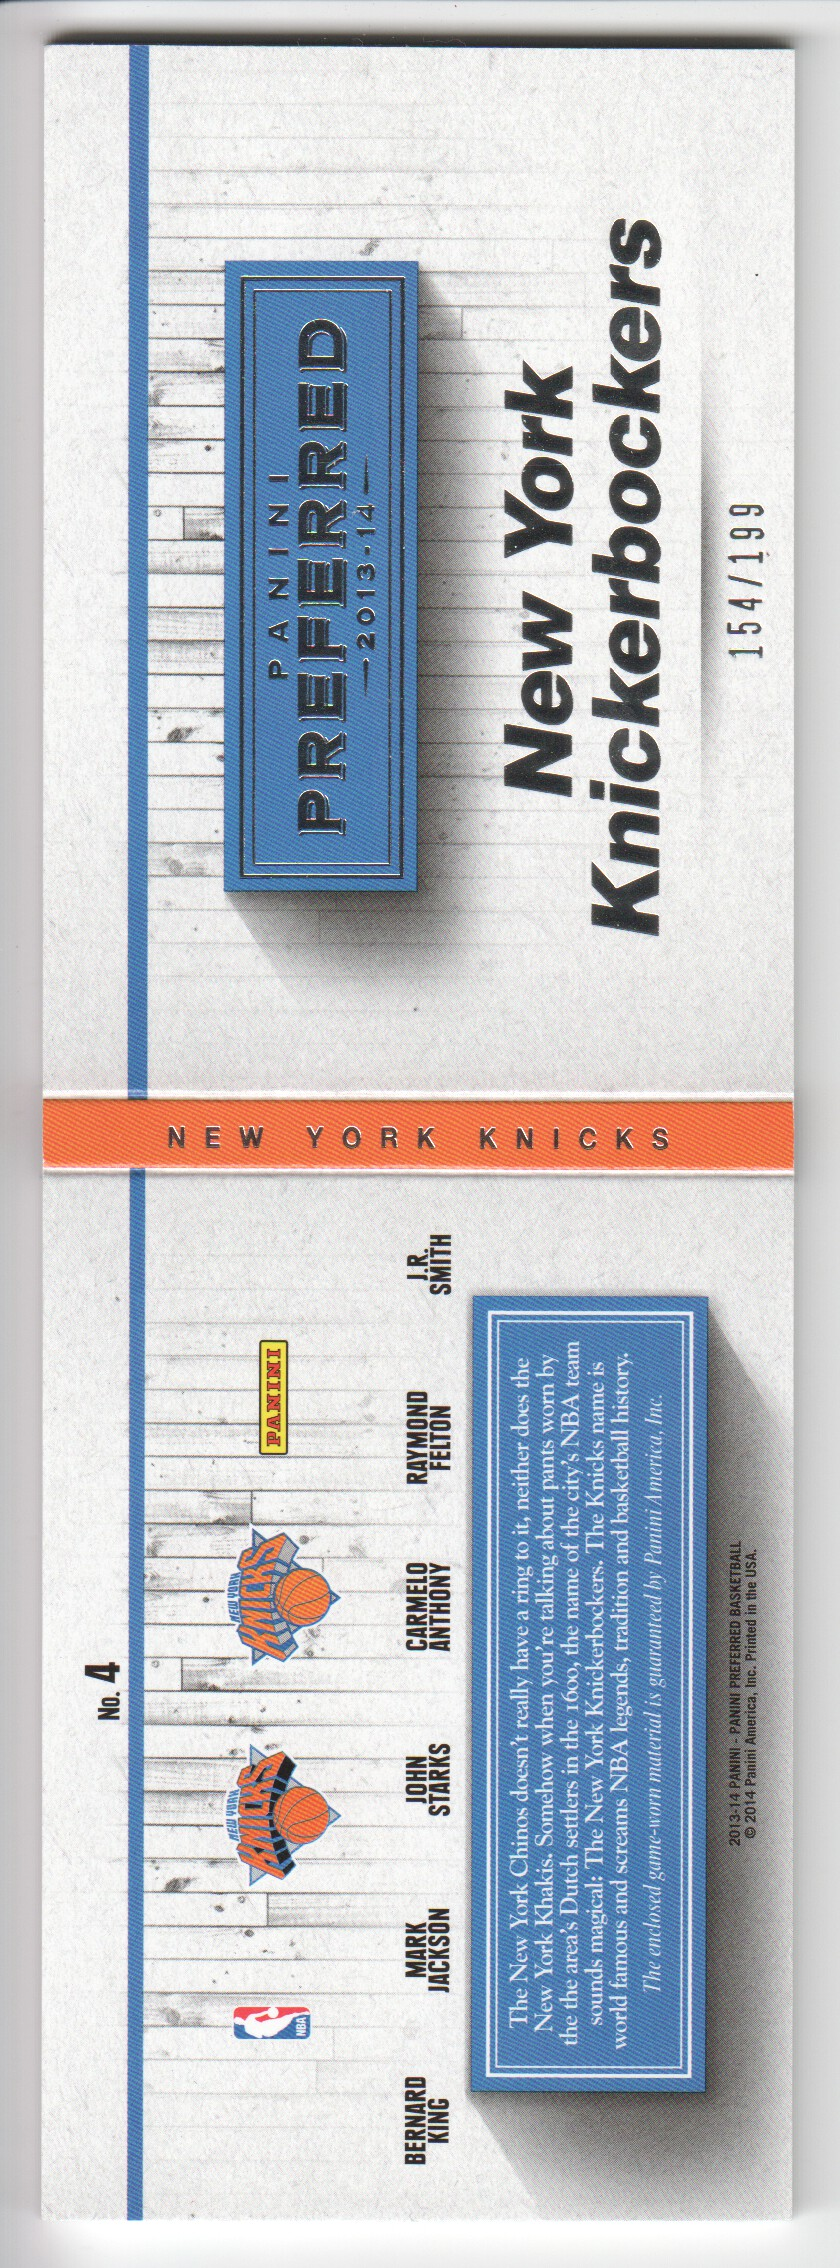 2013-14 Panini Preferred Knicks Memorabilia #4 Bernard King/Carmelo Anthony/John Starks/Mark Jackson/Raymond Felton/J.R. Smith